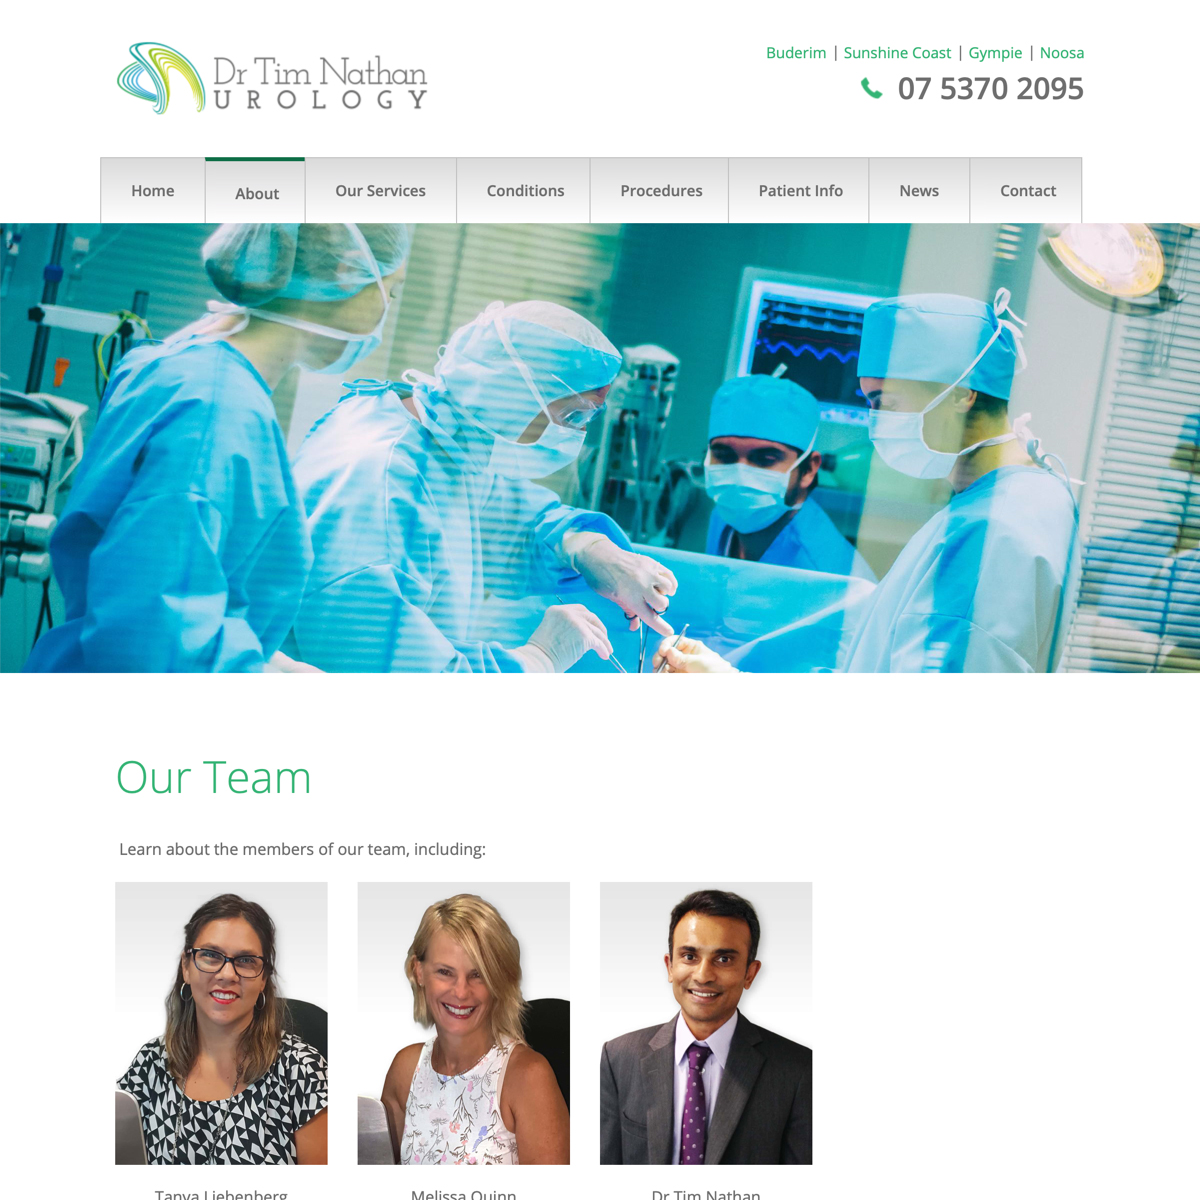 Dr Tim Nathan Urology - Our Team